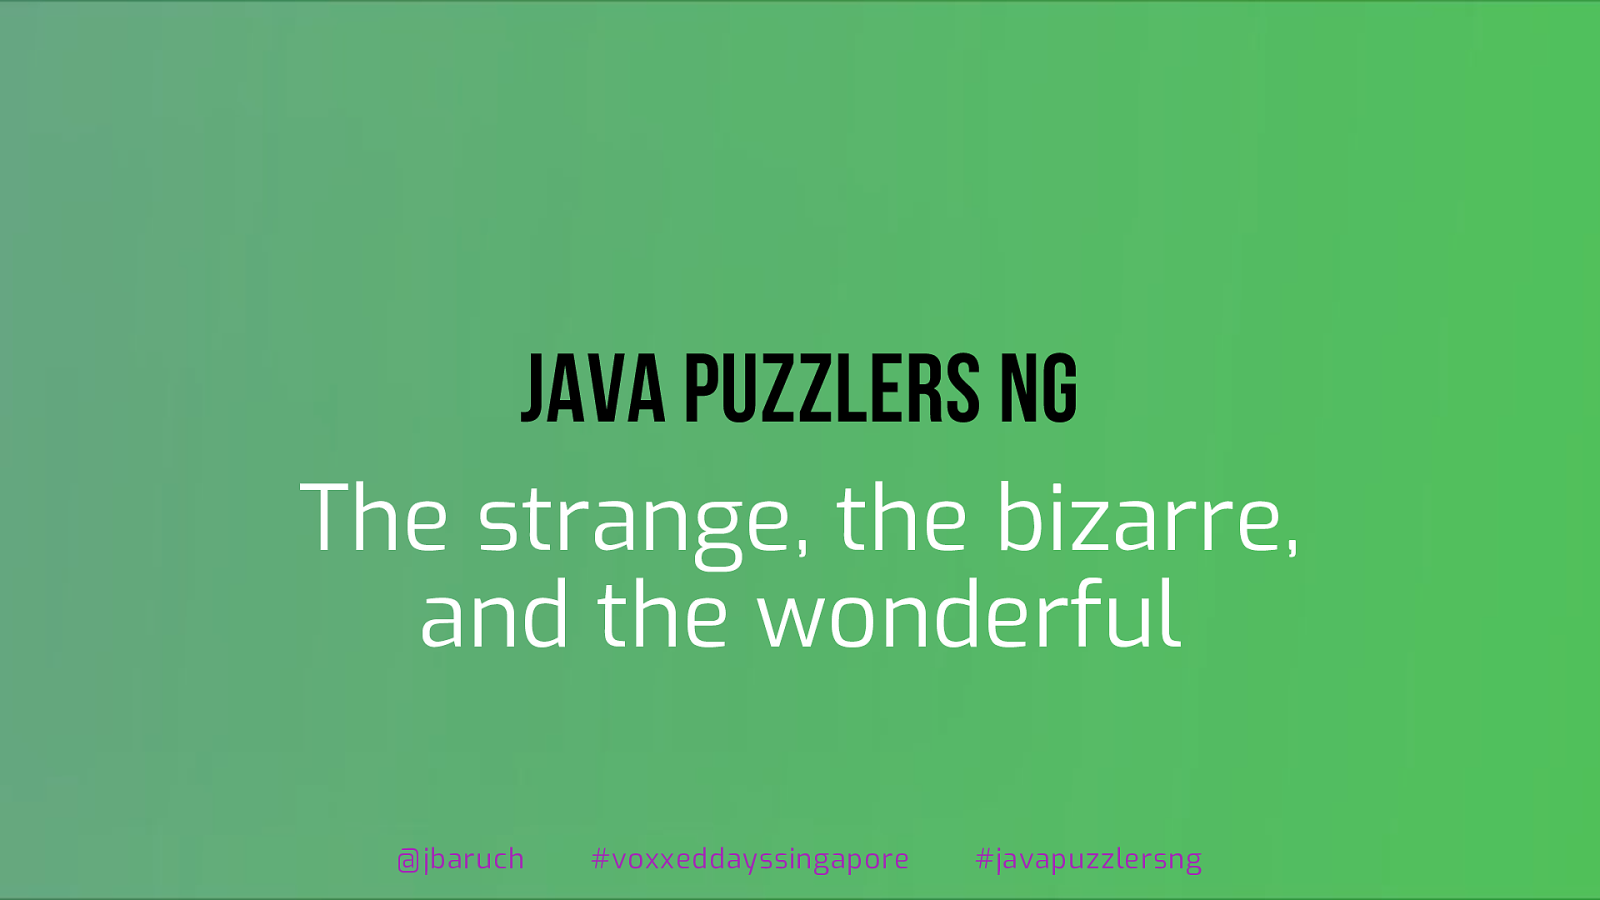 Java Puzzlers NG: The strange, the bizarre, and the wonderful